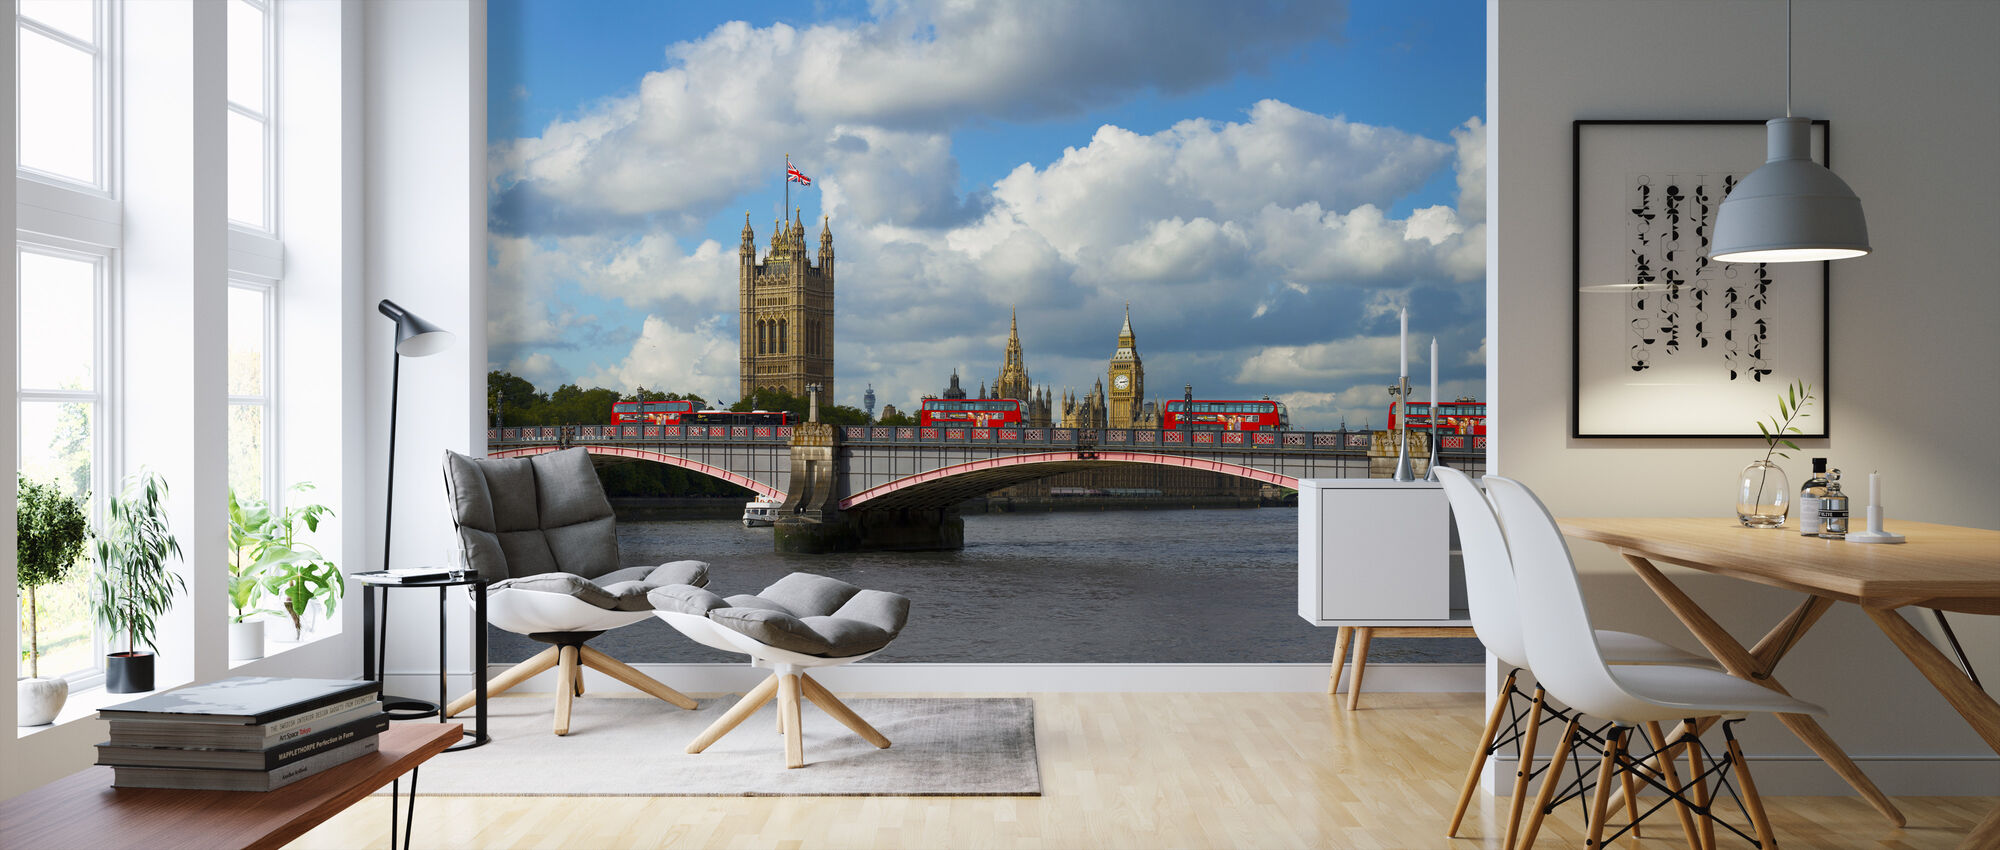 Buses on Lambeth Bridge - Wallpaper - Living Room